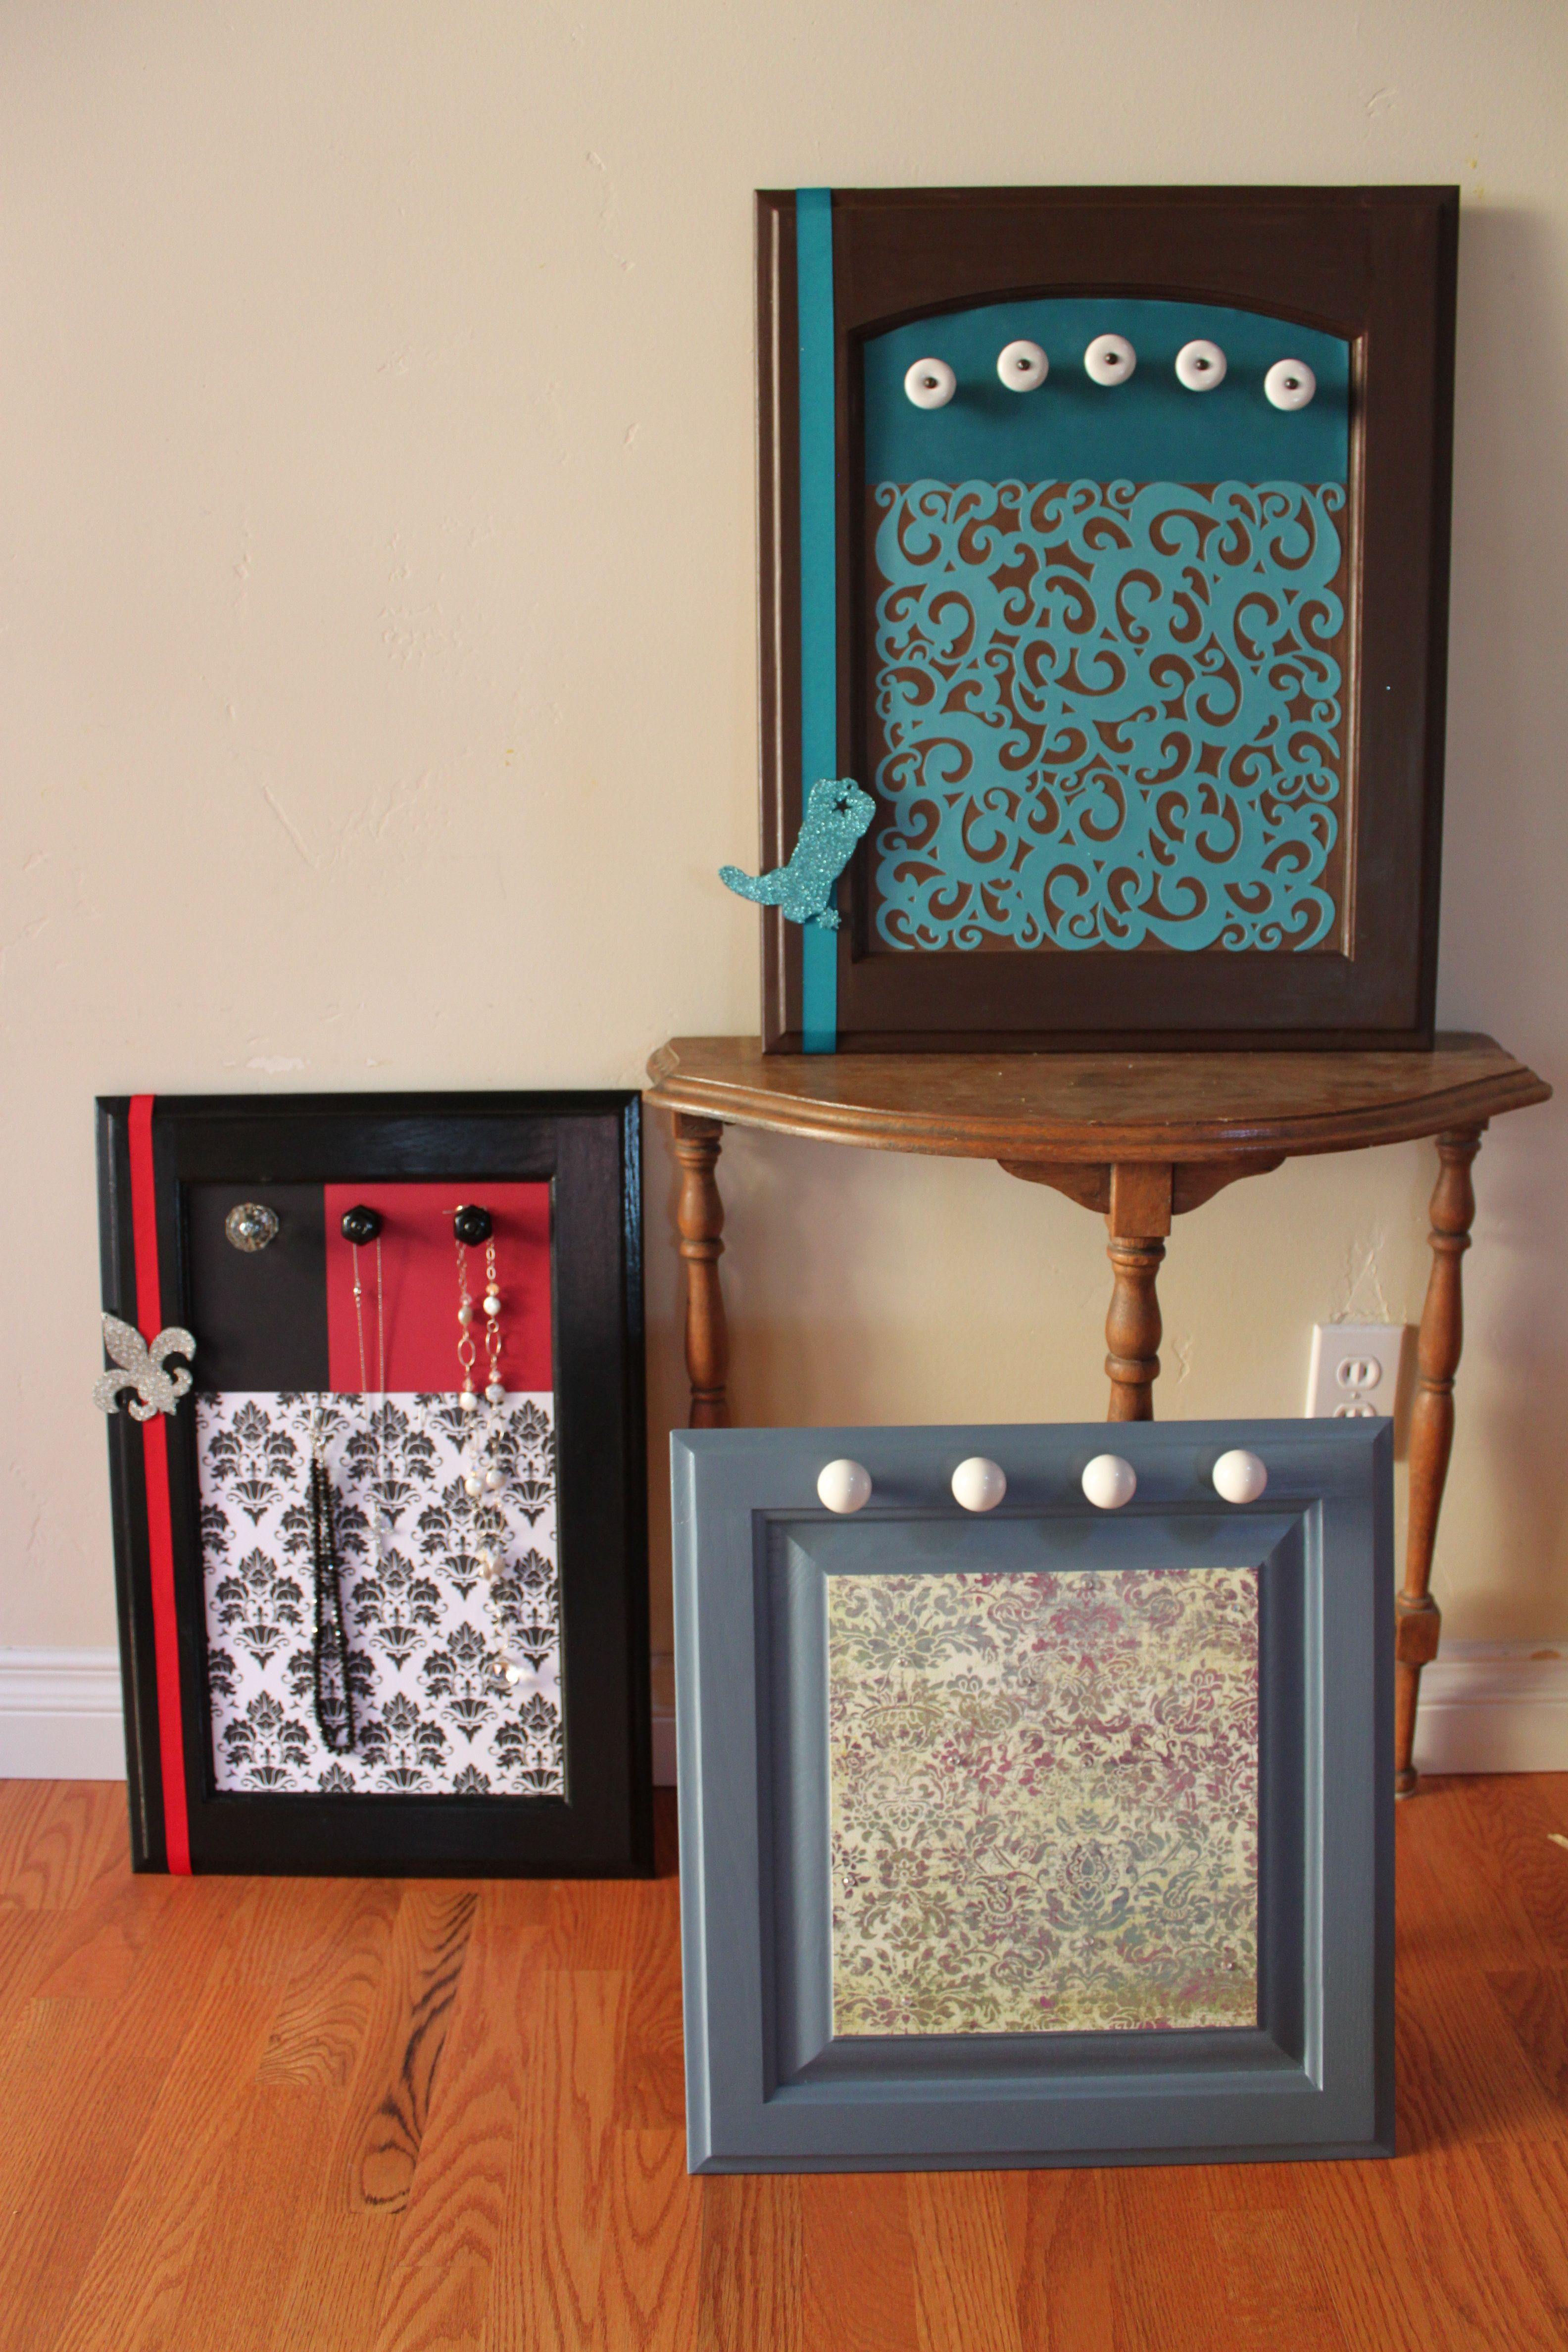 kitchen cabinet door pulls Jewelry display boards made from repurposed kitchen cabinet doors and pulls